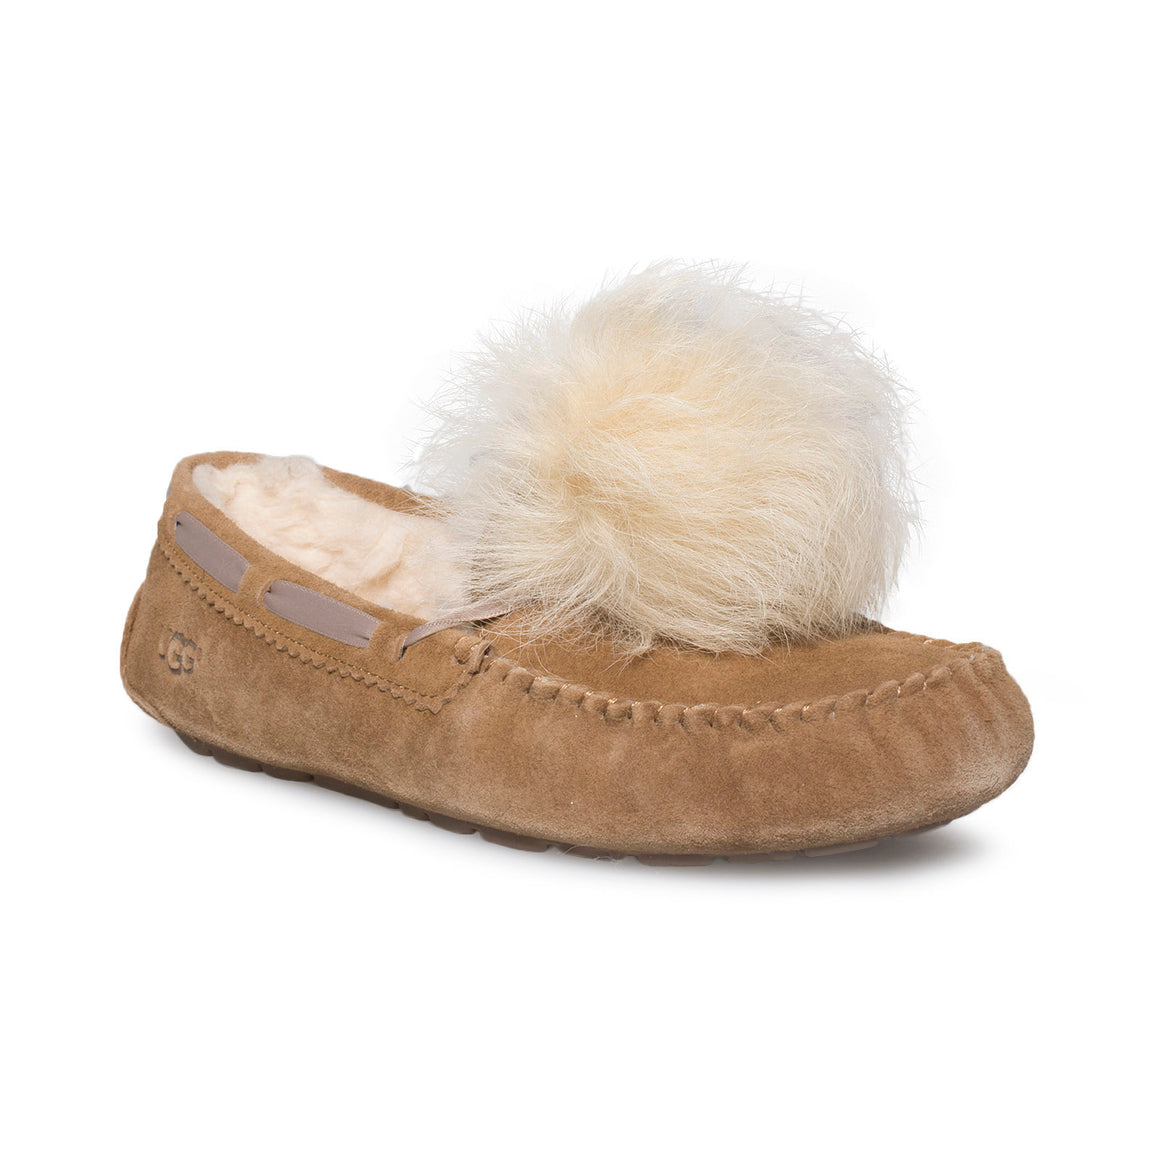 UGG Dakota Pom Pom Chestnut Slippers